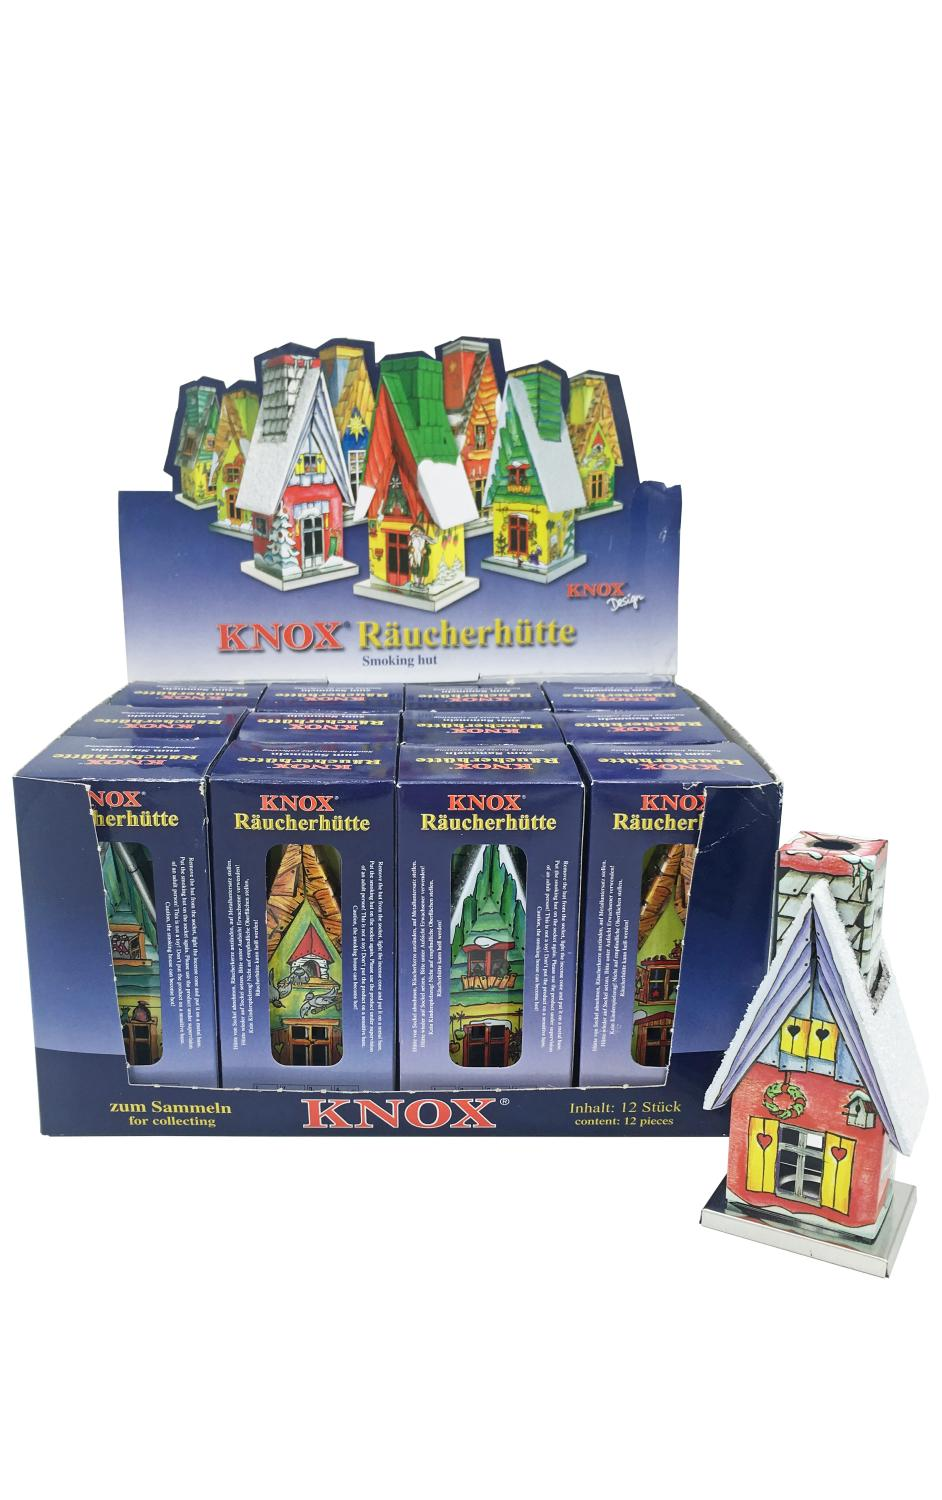 203020 - Knox Metal Incense House - Assorted Houses - Display box of 12 pieces - 10.5